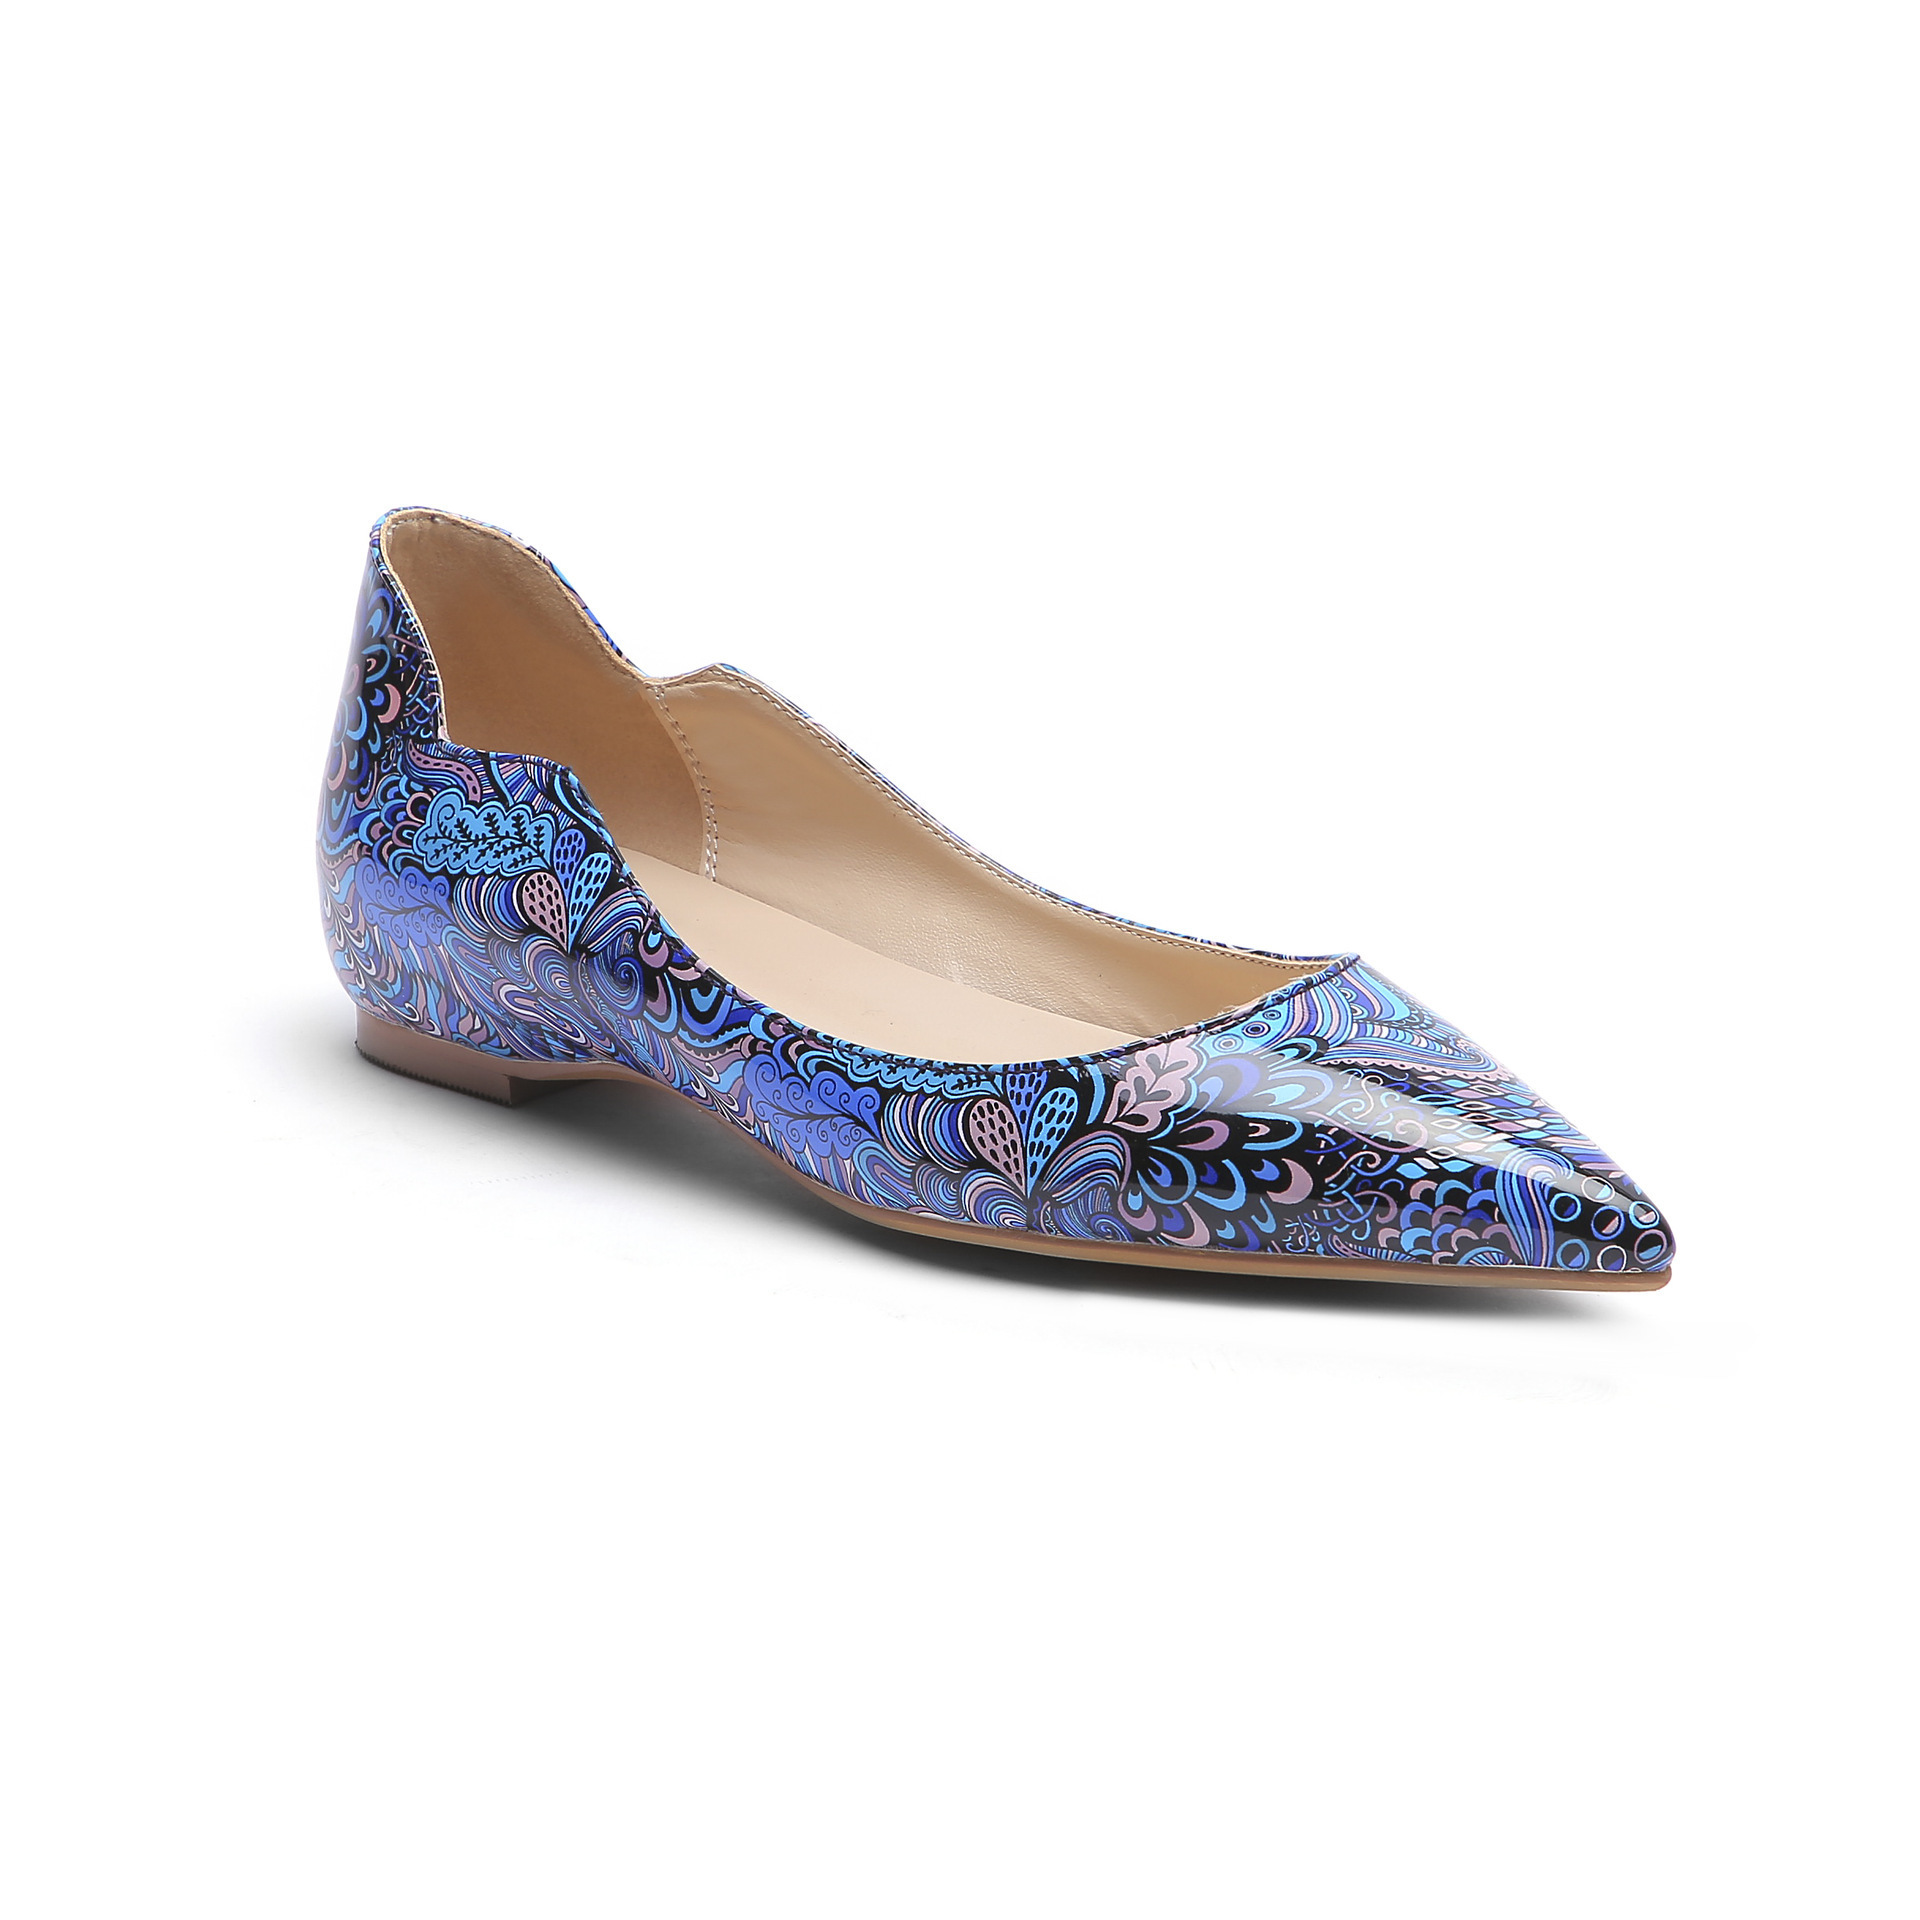 Hot2019 Level Sharp Year With Colour Decorative Pattern Patent Leather Ma'am Latest Fashion Single Shoe Nation Wind Will Code 45